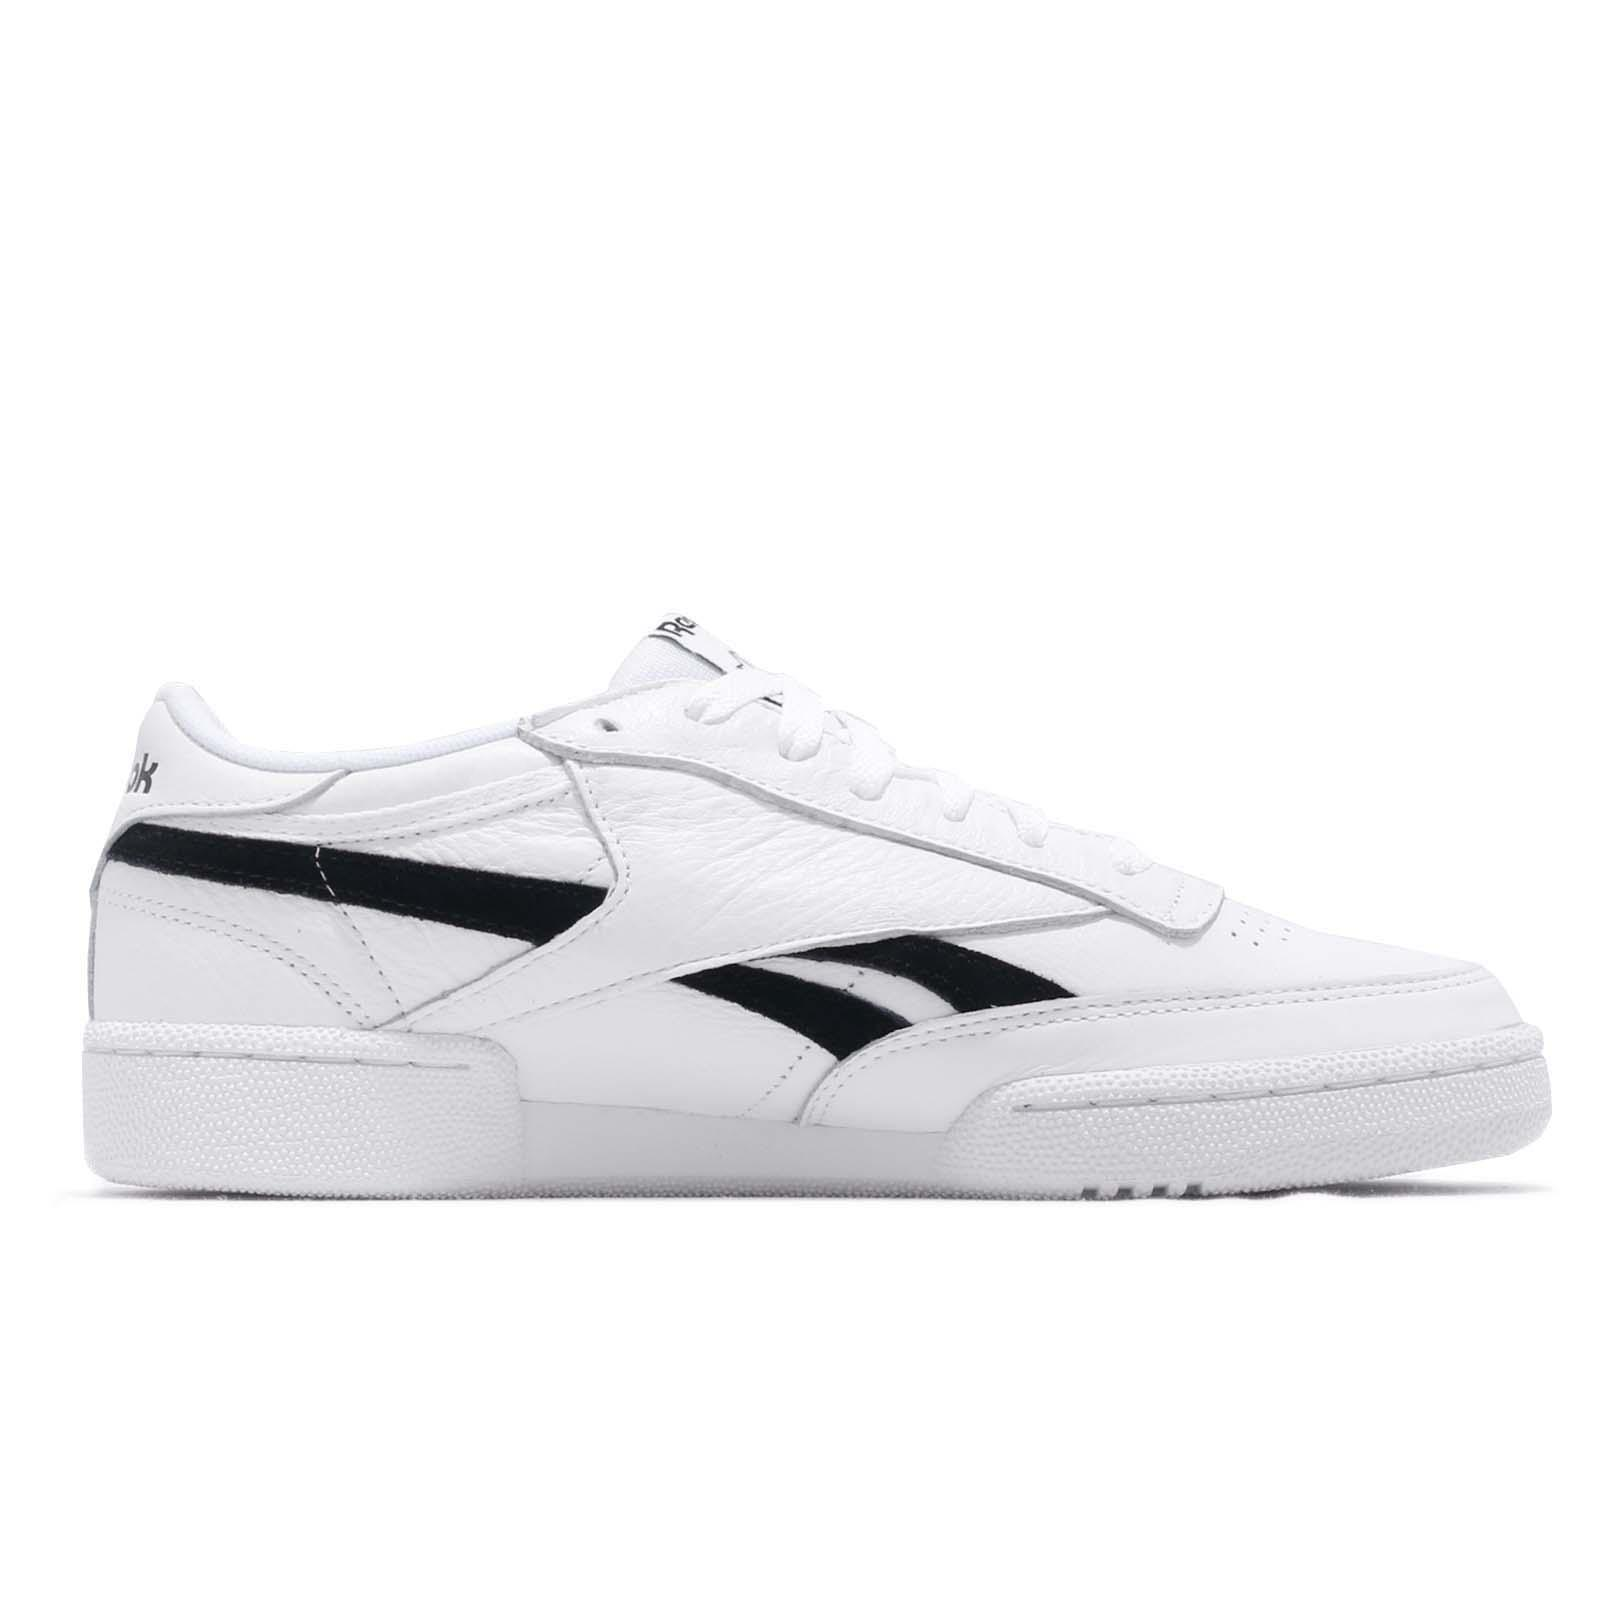 5f6b3c917f50 Reebok Revenge Plus MU White Black Men Classic Casual Shoes Sneakers ...